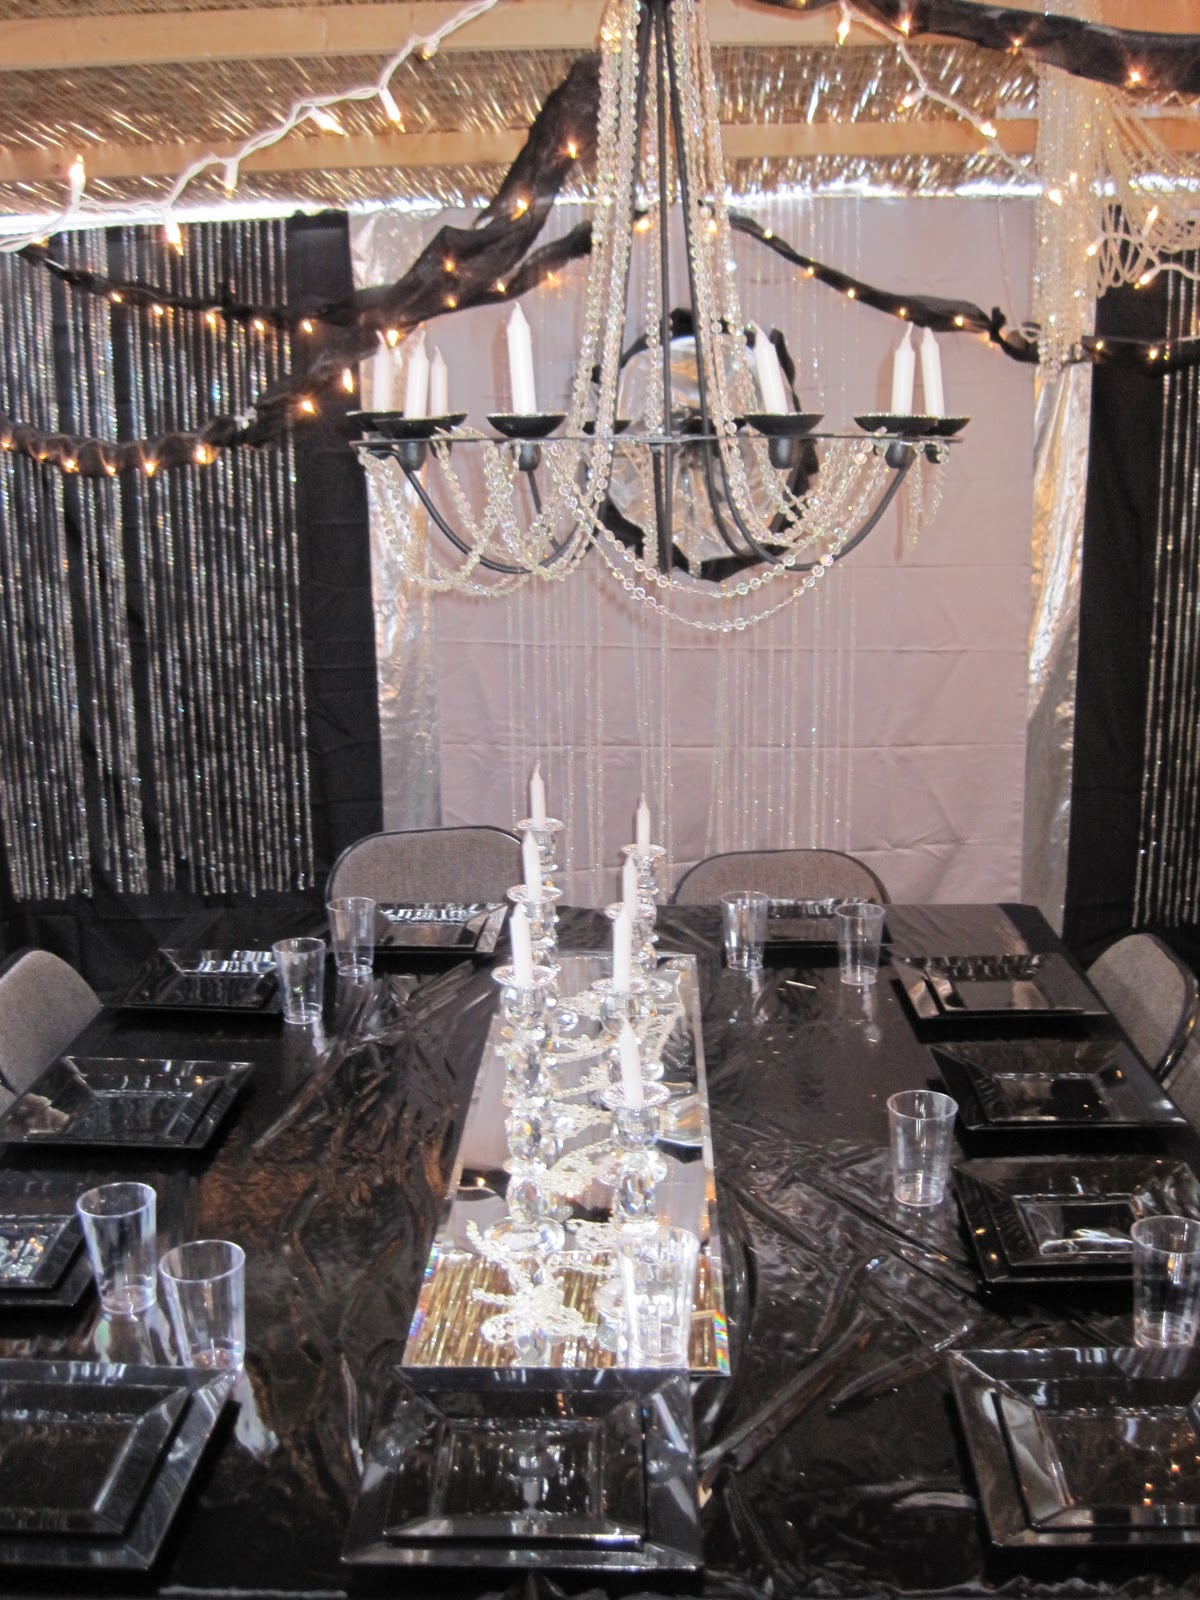 TABLE SETTING INSPIRATIONS PART II: IDEAS FOR DECORATING YOUR SUKKAH - .